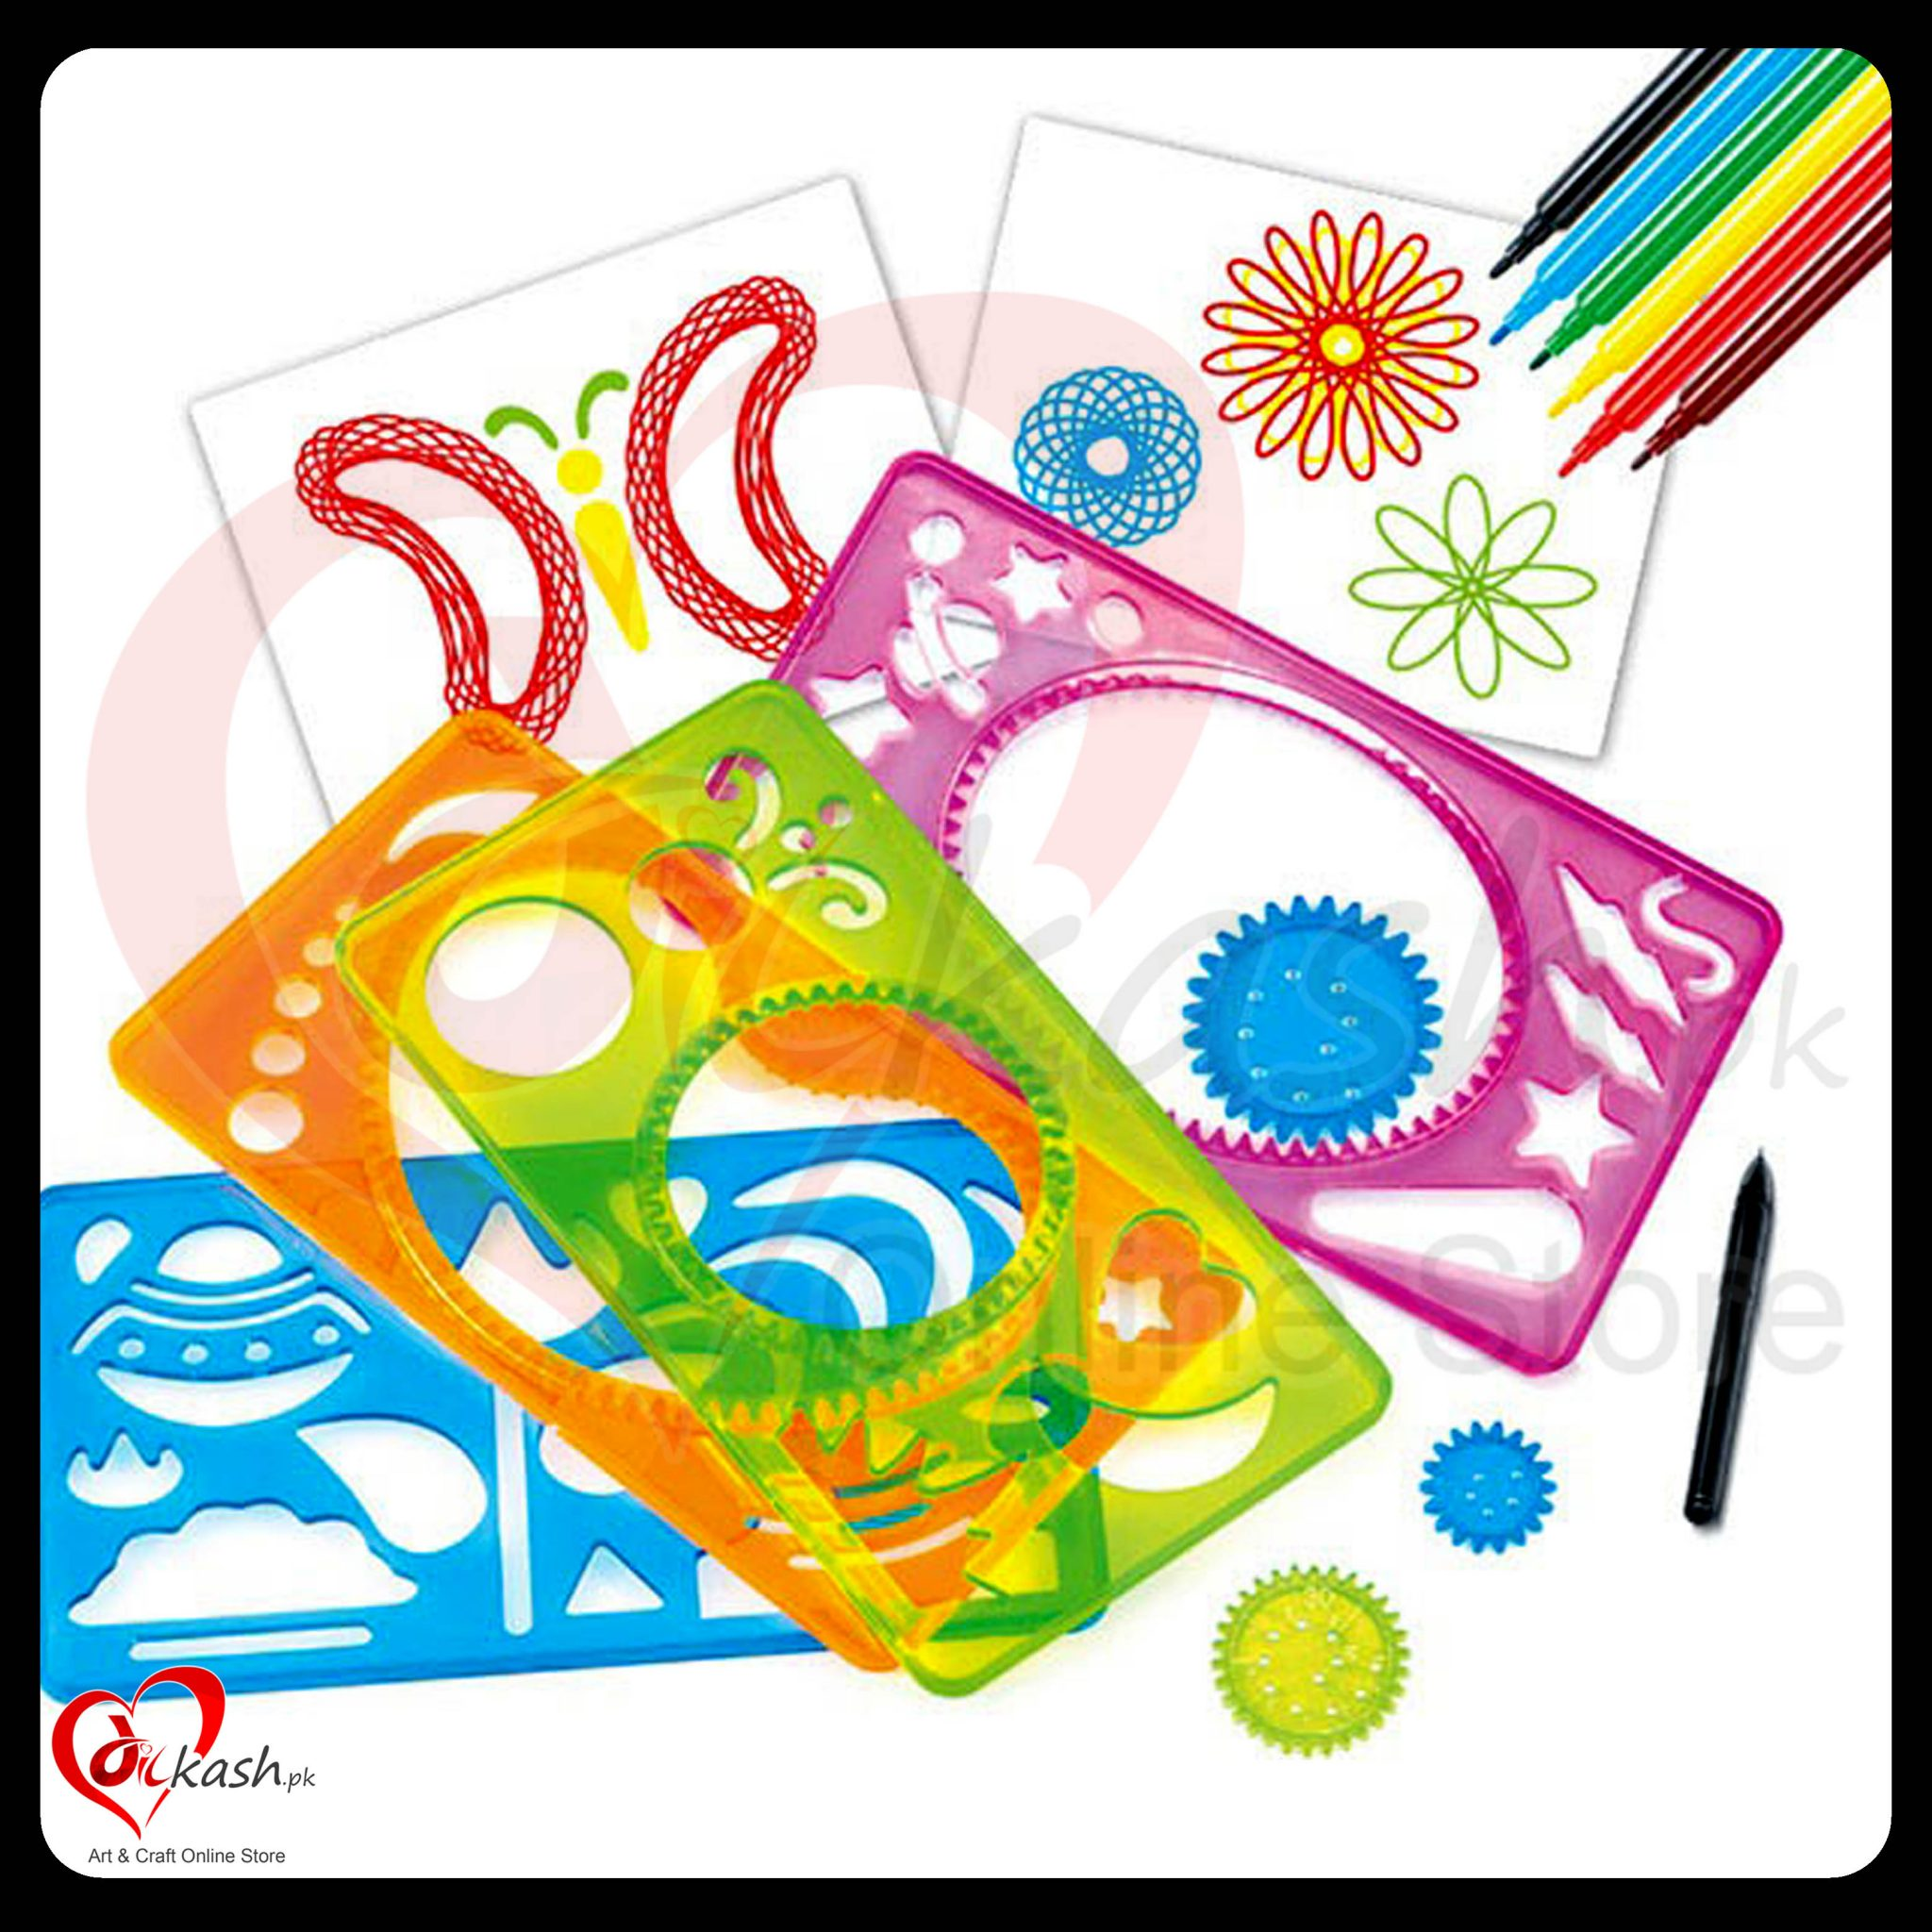 Spirograph Kit - Spirograph Deluxe Design Set HM1303A Stencils + Markers 4019400013035